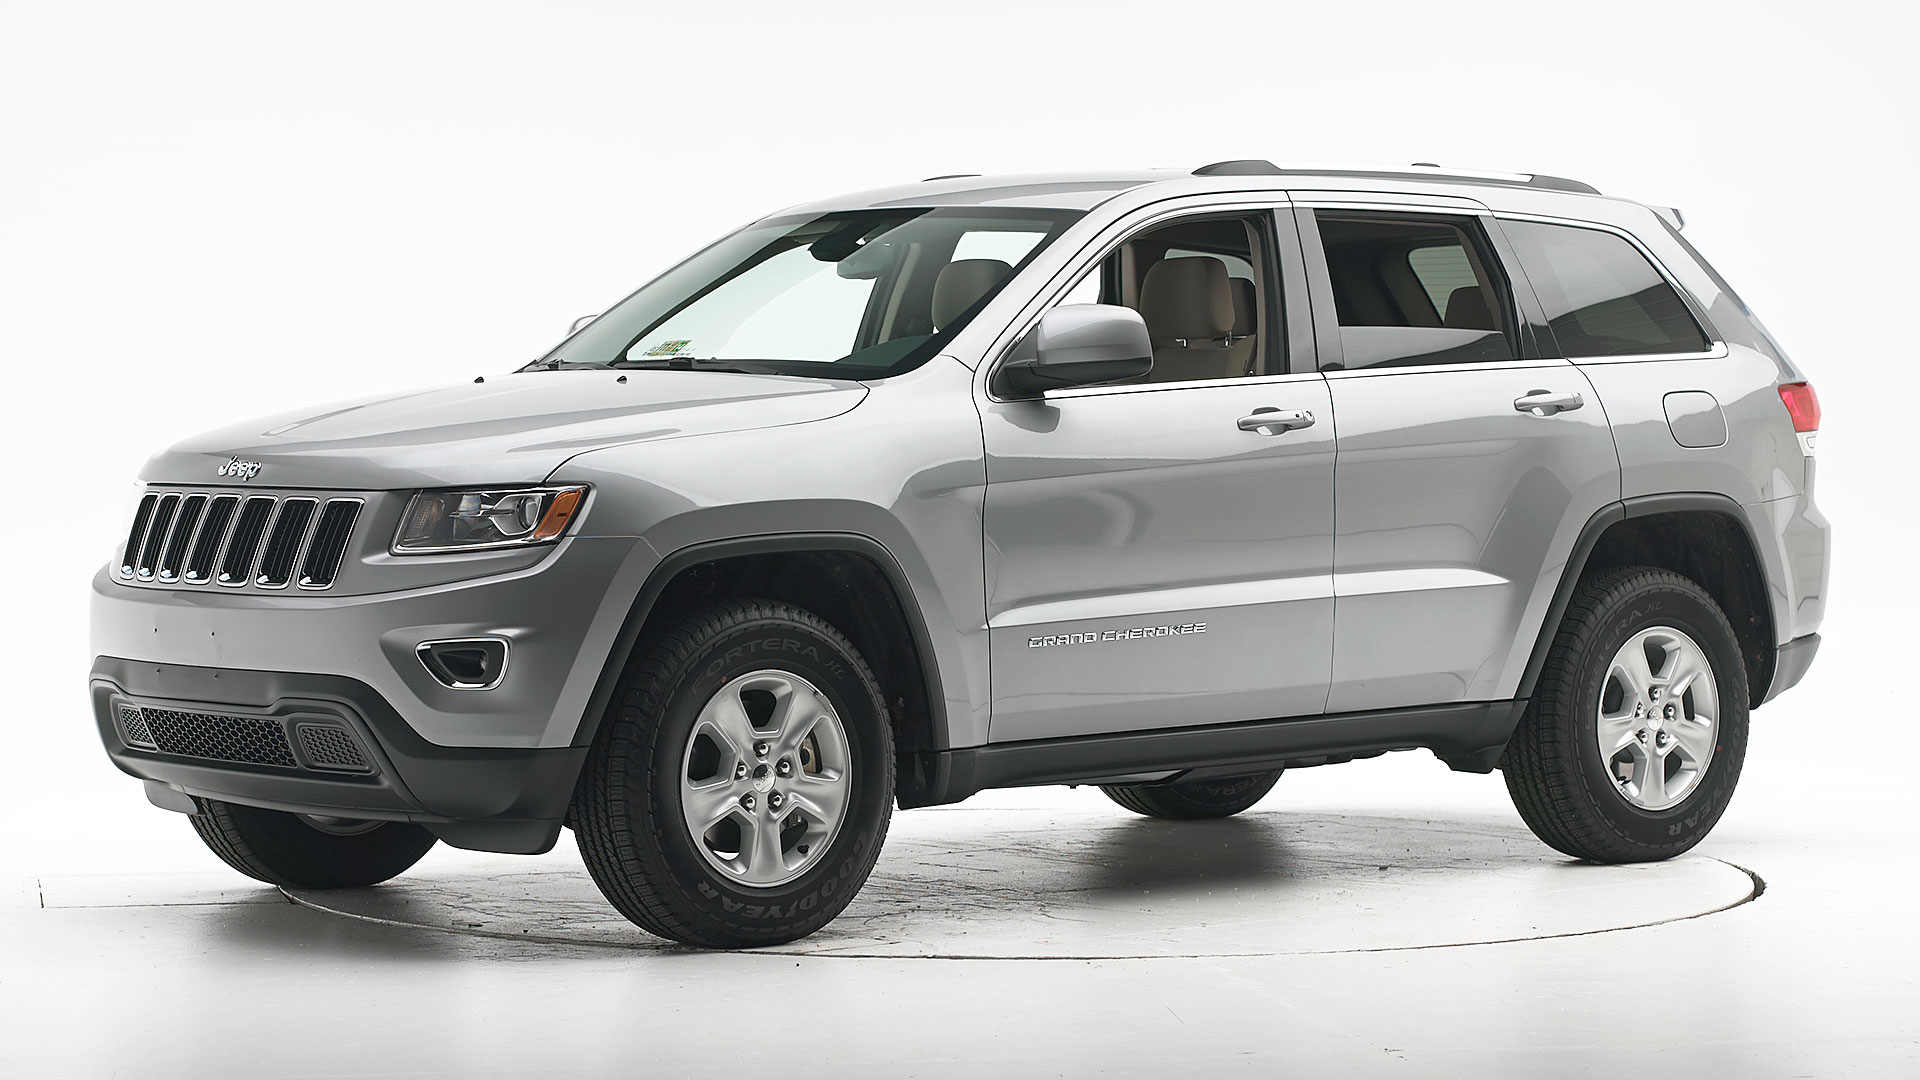 2017 Jeep Grand Cherokee 4-door SUV